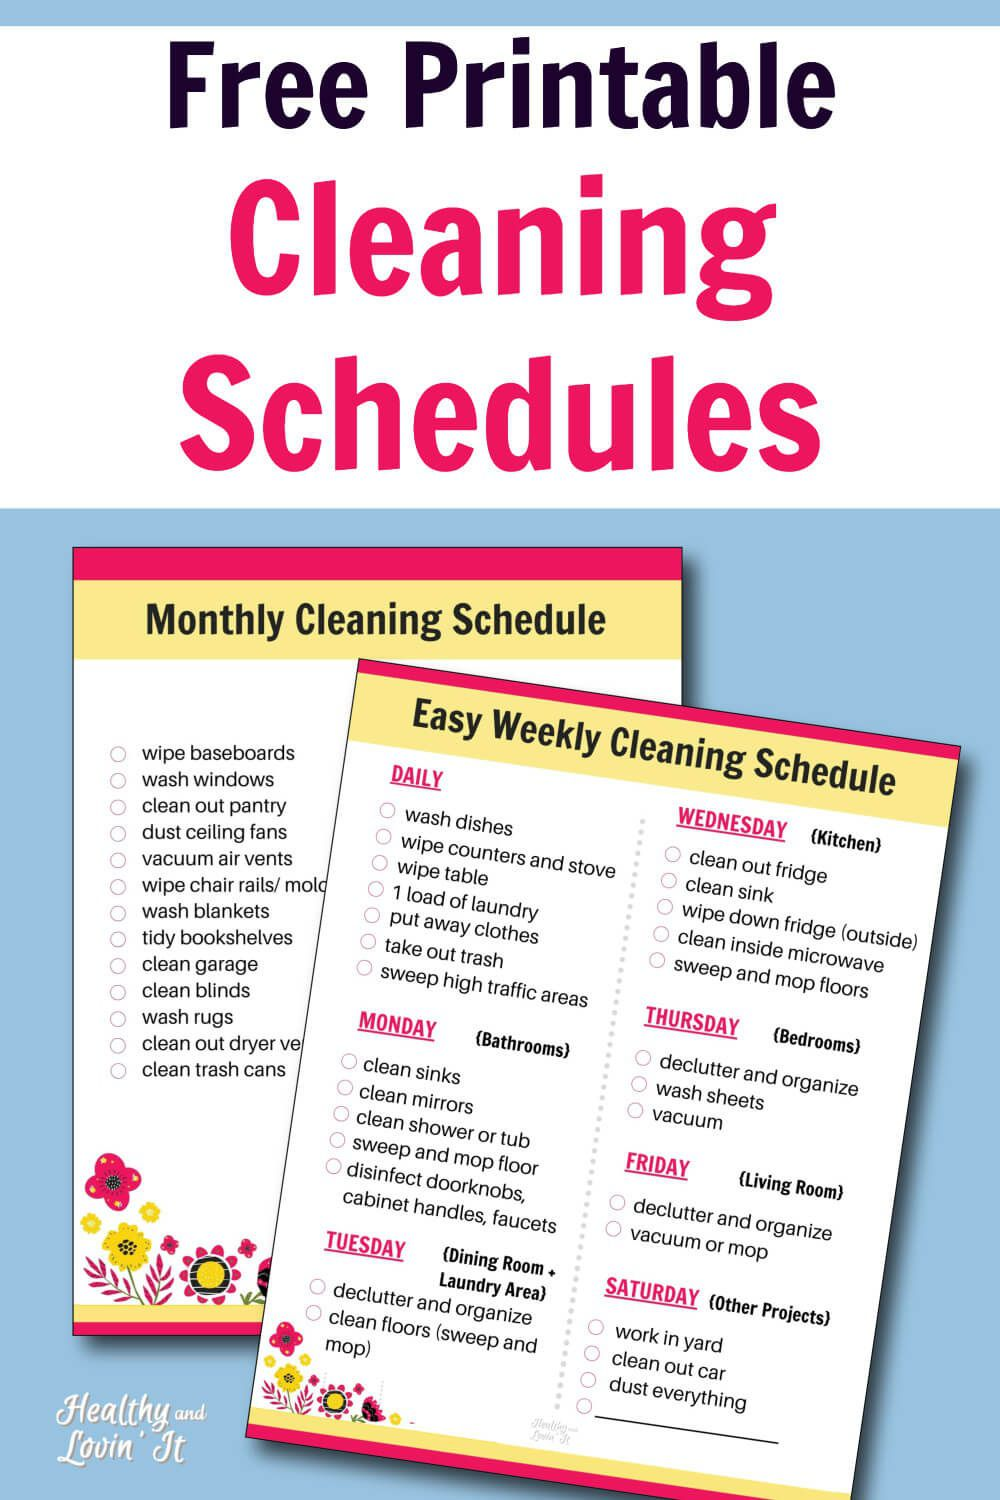 007 Shocking Free Printable Weekly Cleaning Schedule Template Highest Quality  OfficeFull